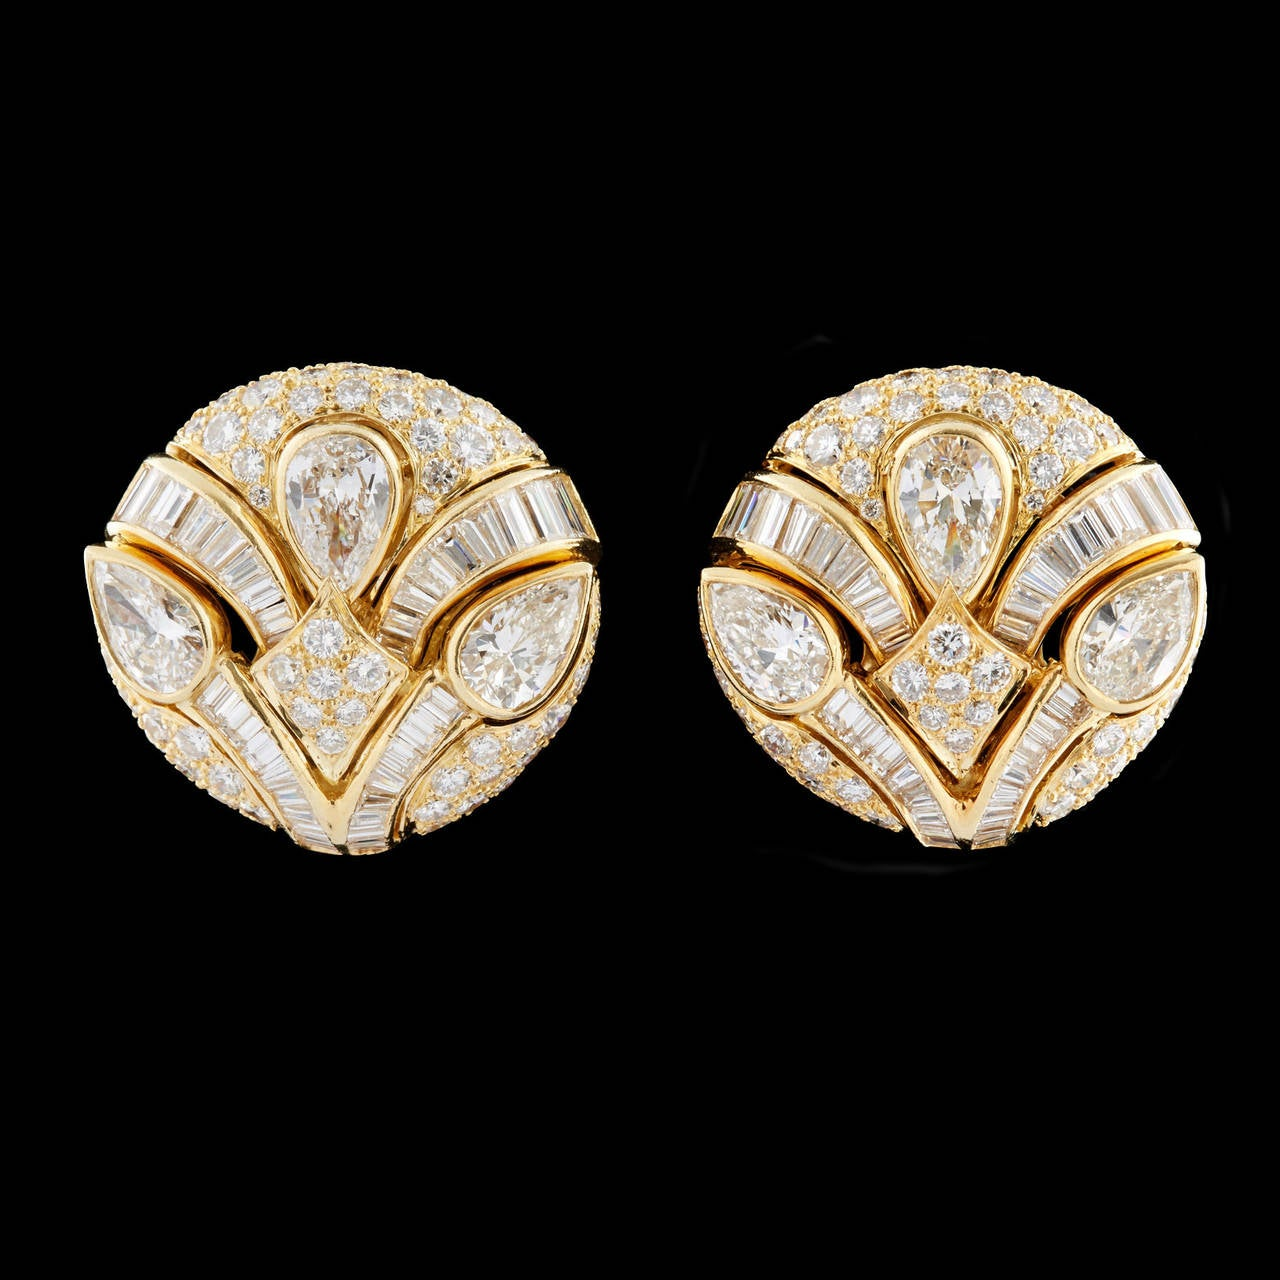 Impressive Bulgari Diamond Button Earrings 2